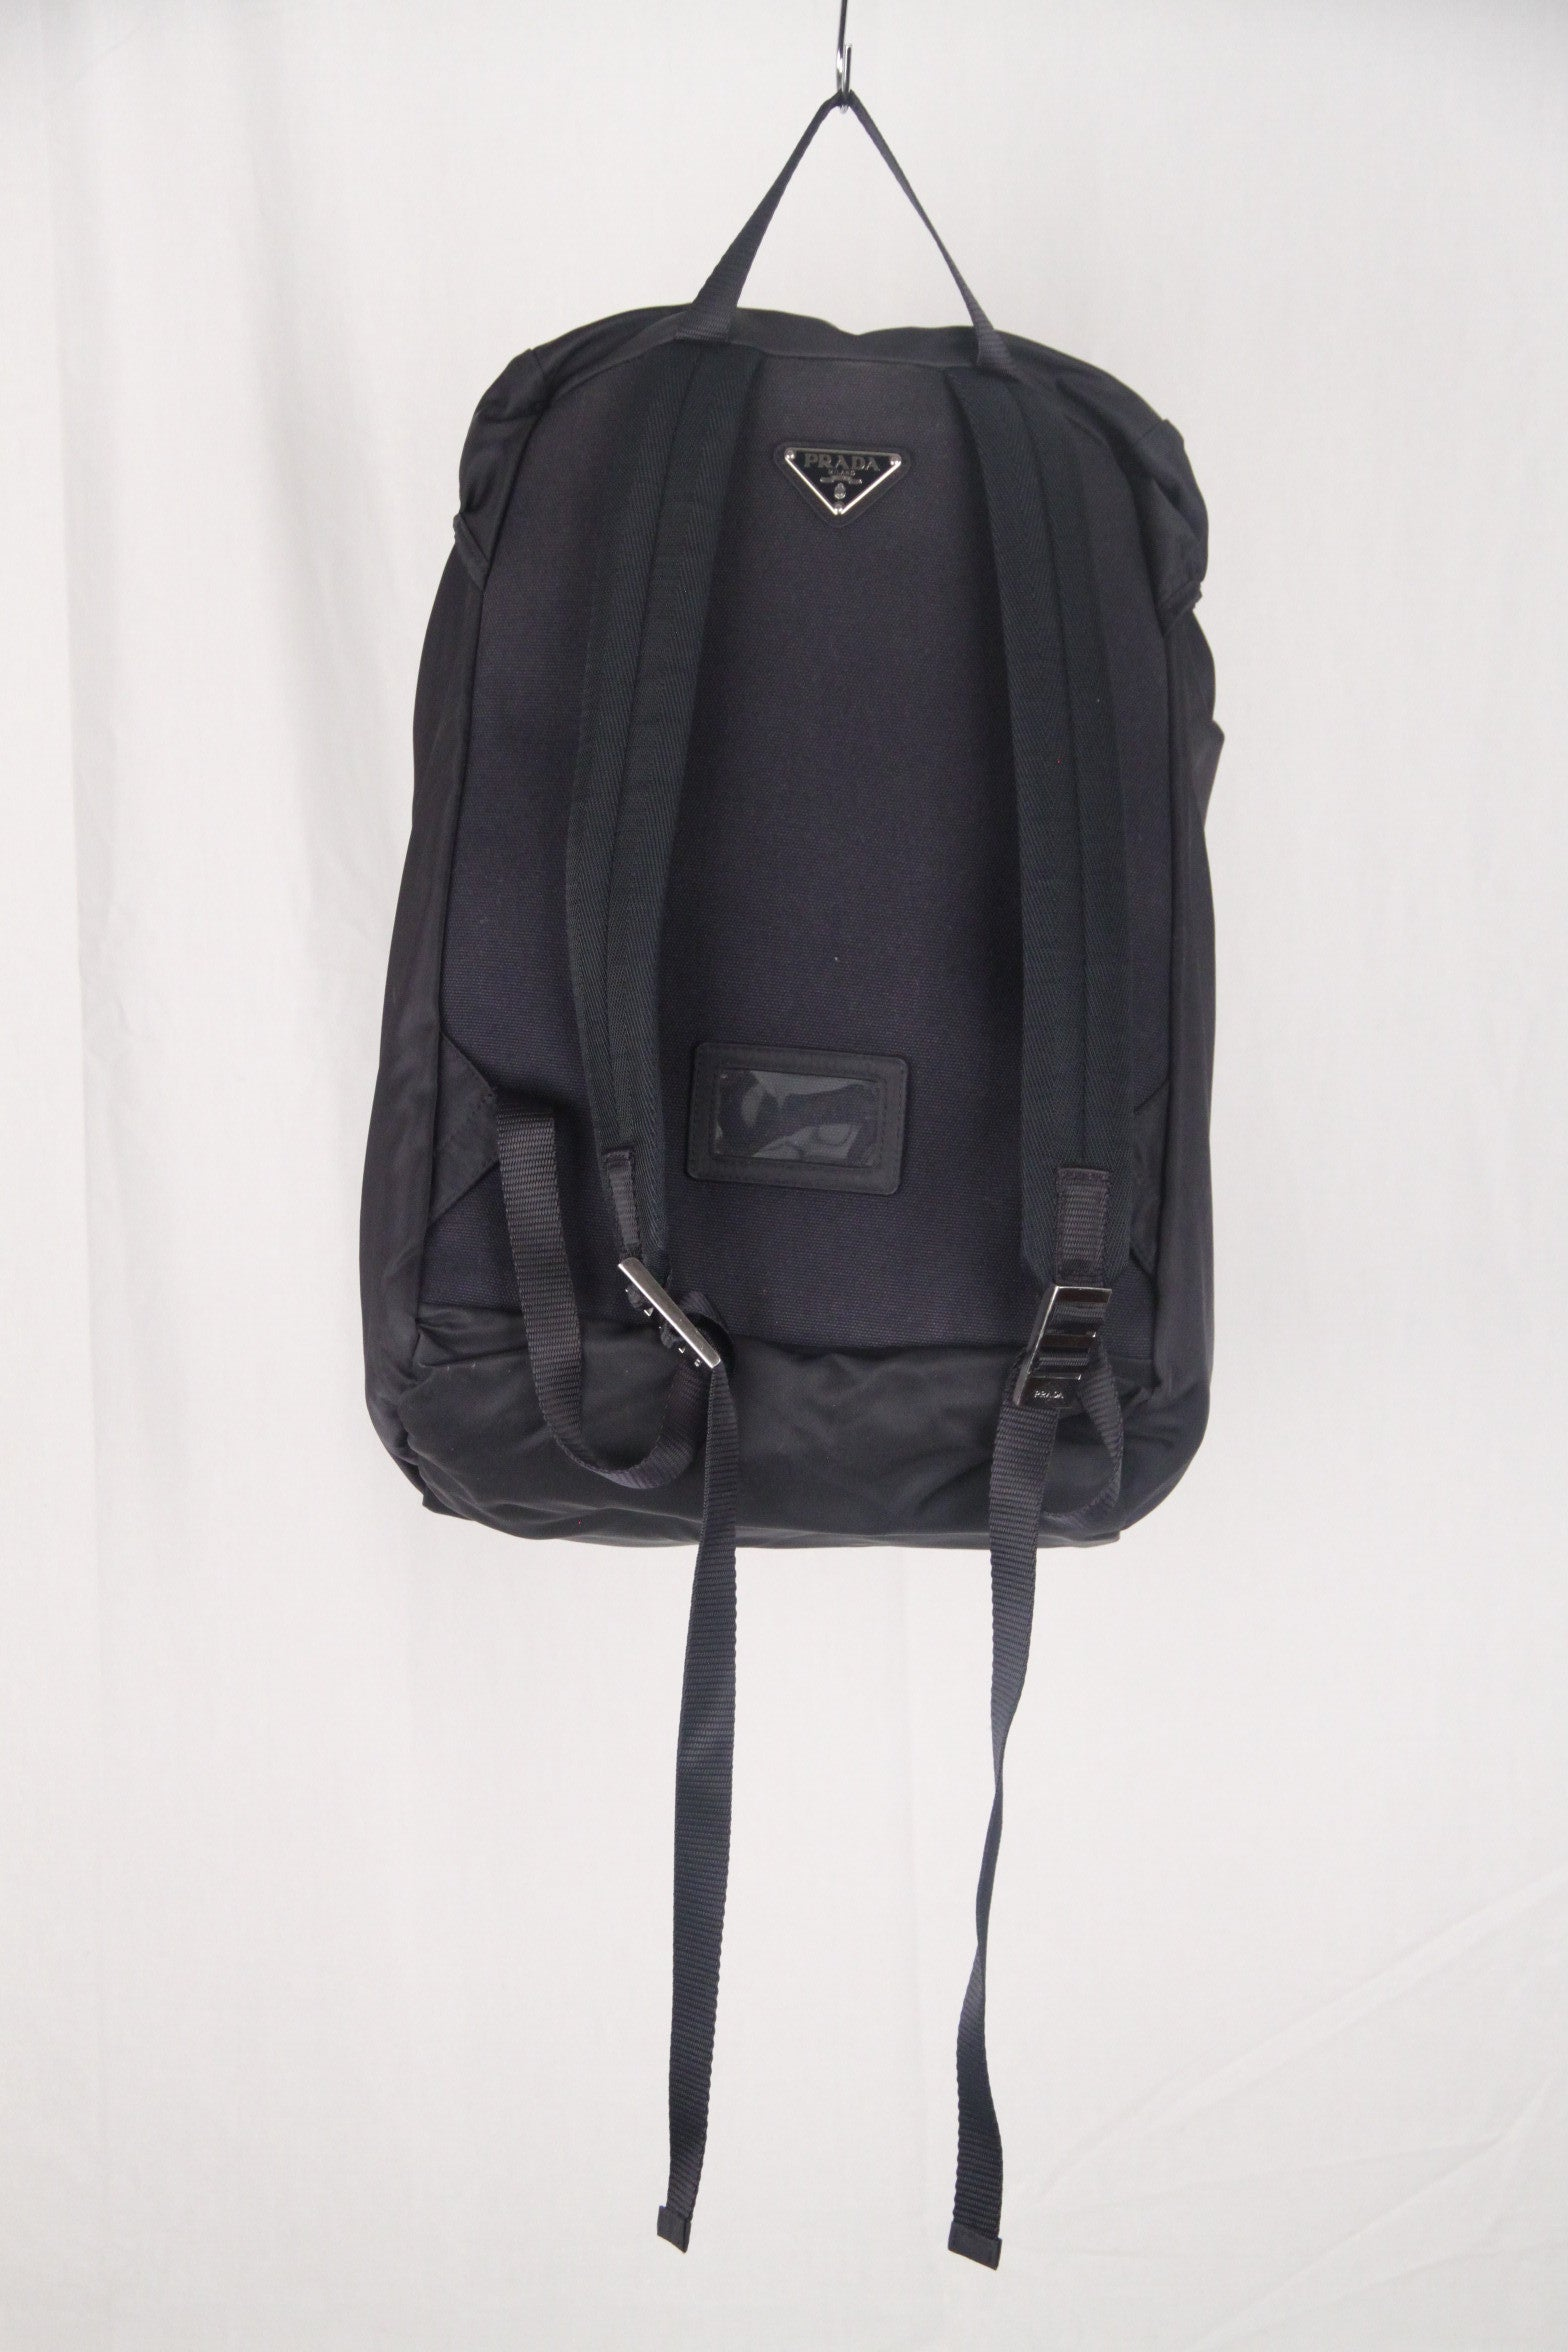 3c2c0a1e92a7 PRADA Navy Blue Nylon Canvas DOUBLE BUCKLE BACKPACK For Sale at 1stdibs